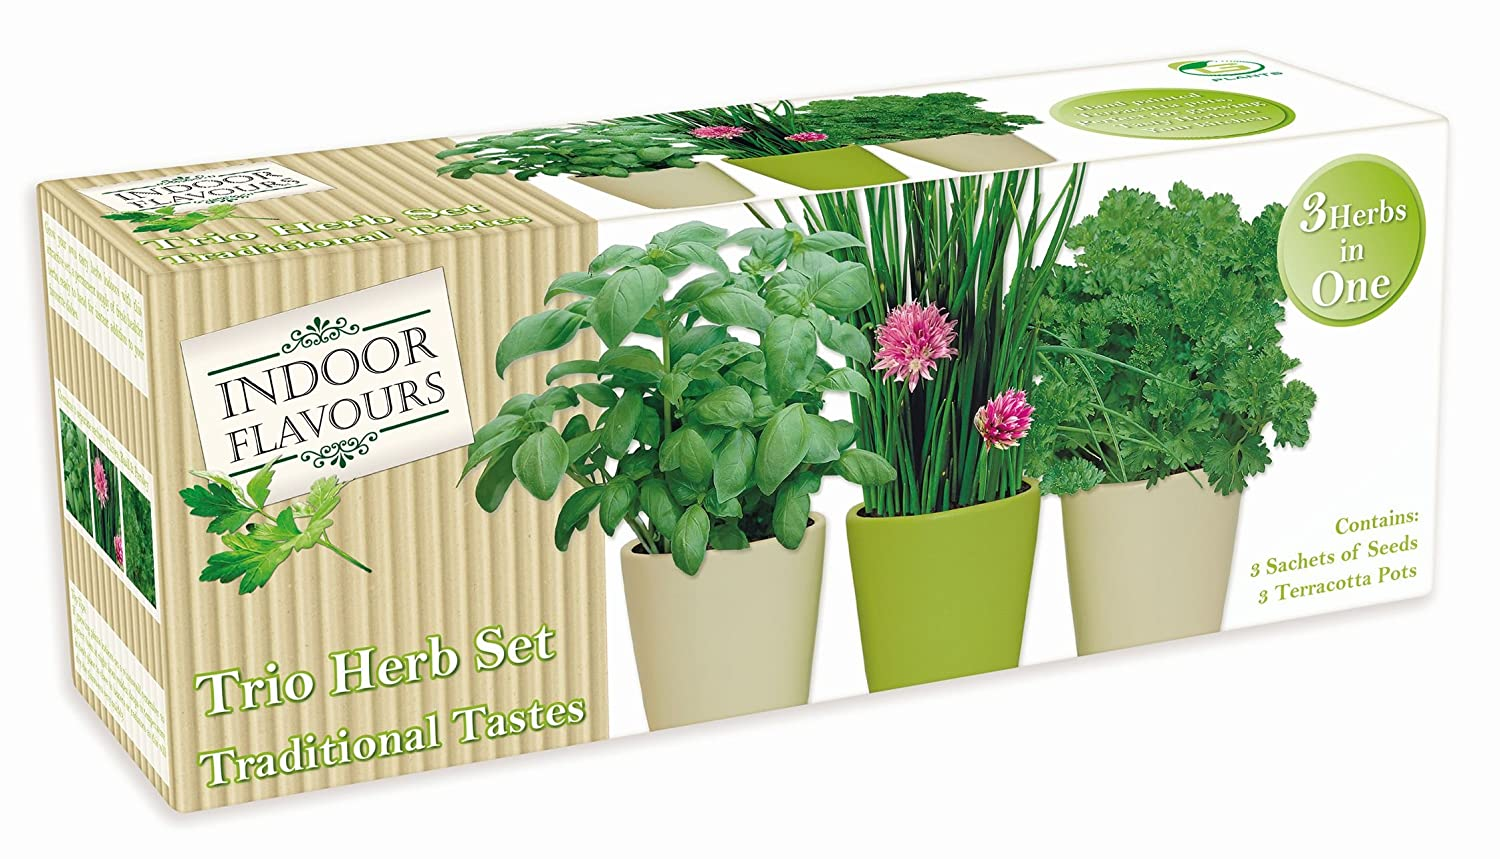 Unwins Kitchen Garden Herb Kit Indoor Herb Garden Seed Kit Gift Grow Your Own Box Trio Herb